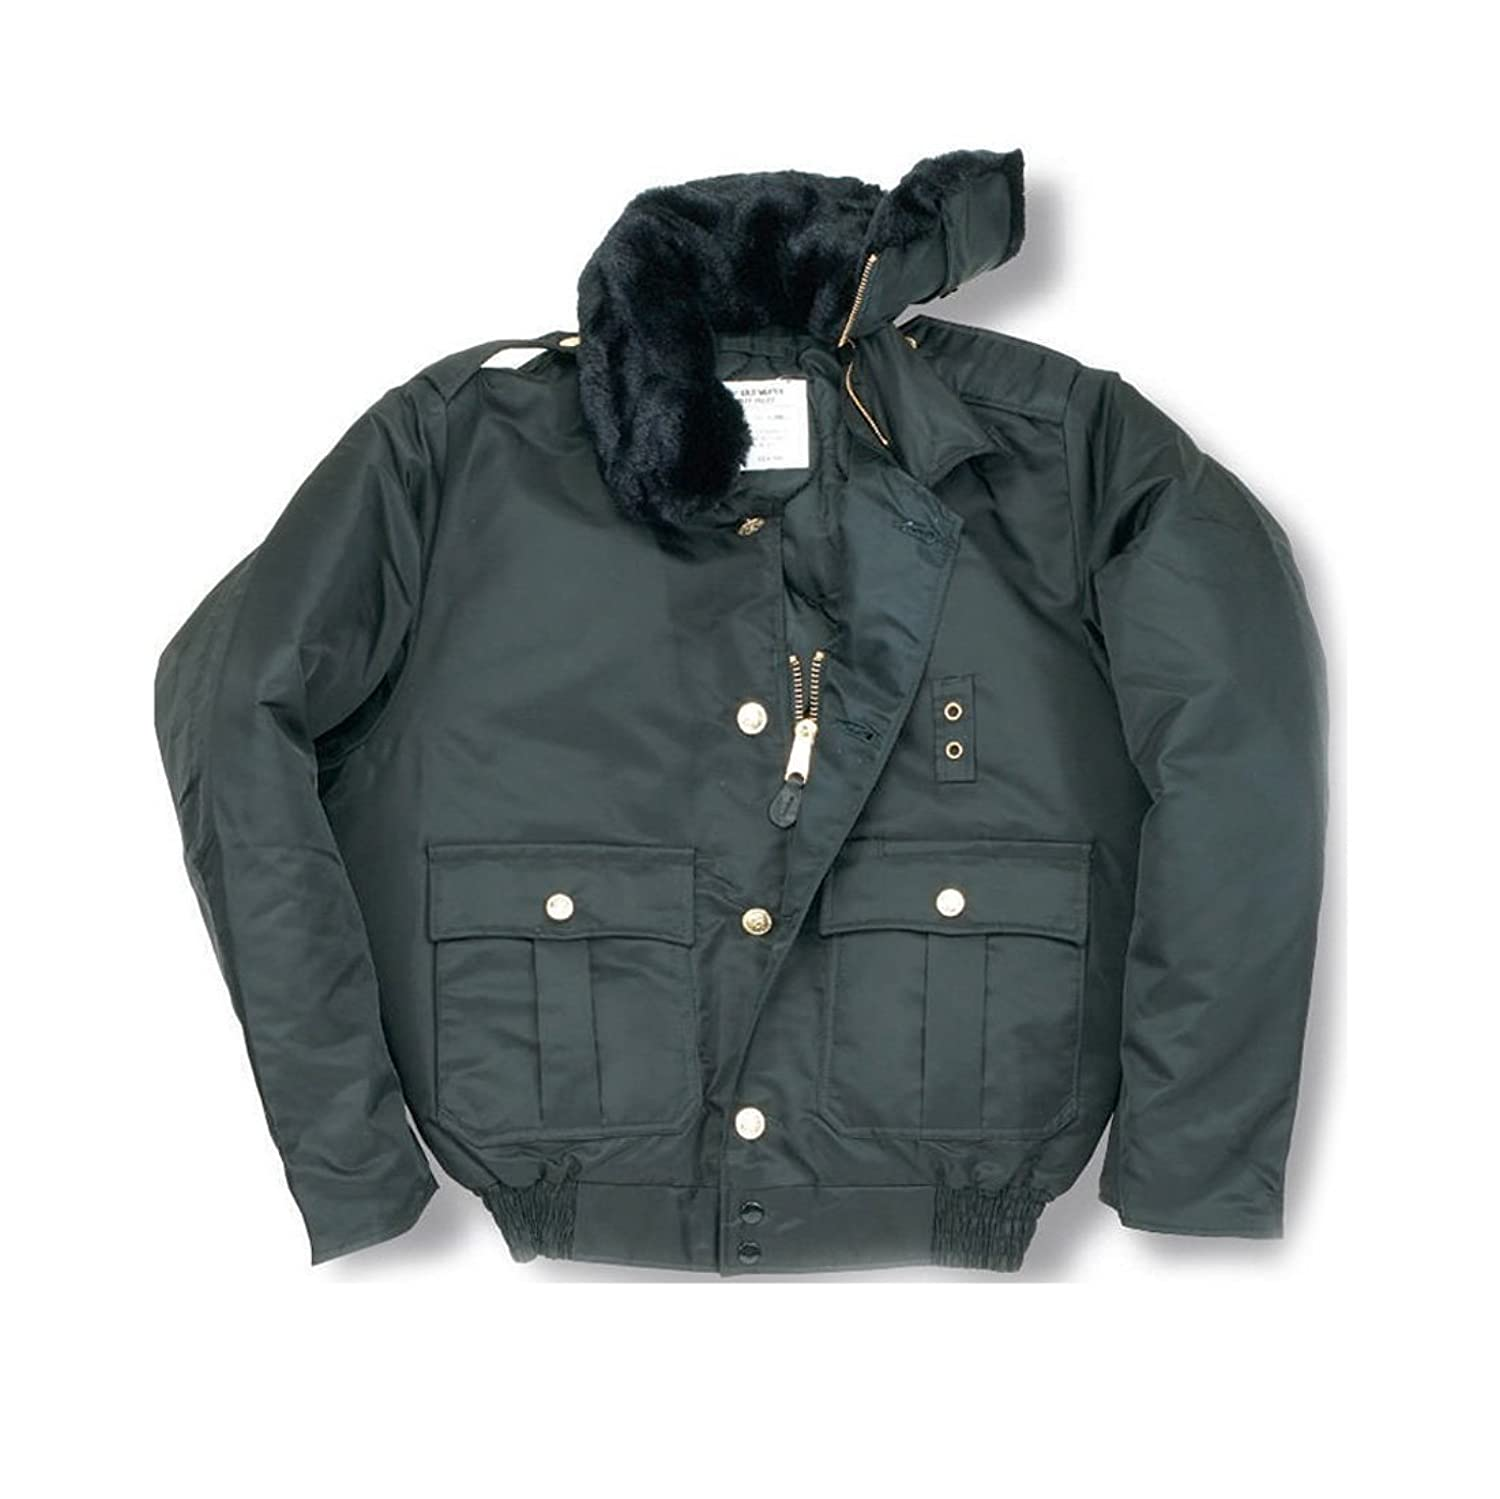 NEW YORK POLICE DEPARTMENT JACKET ORIGINAL STYLE NYPD SECURITY FLIGHT BOMBER